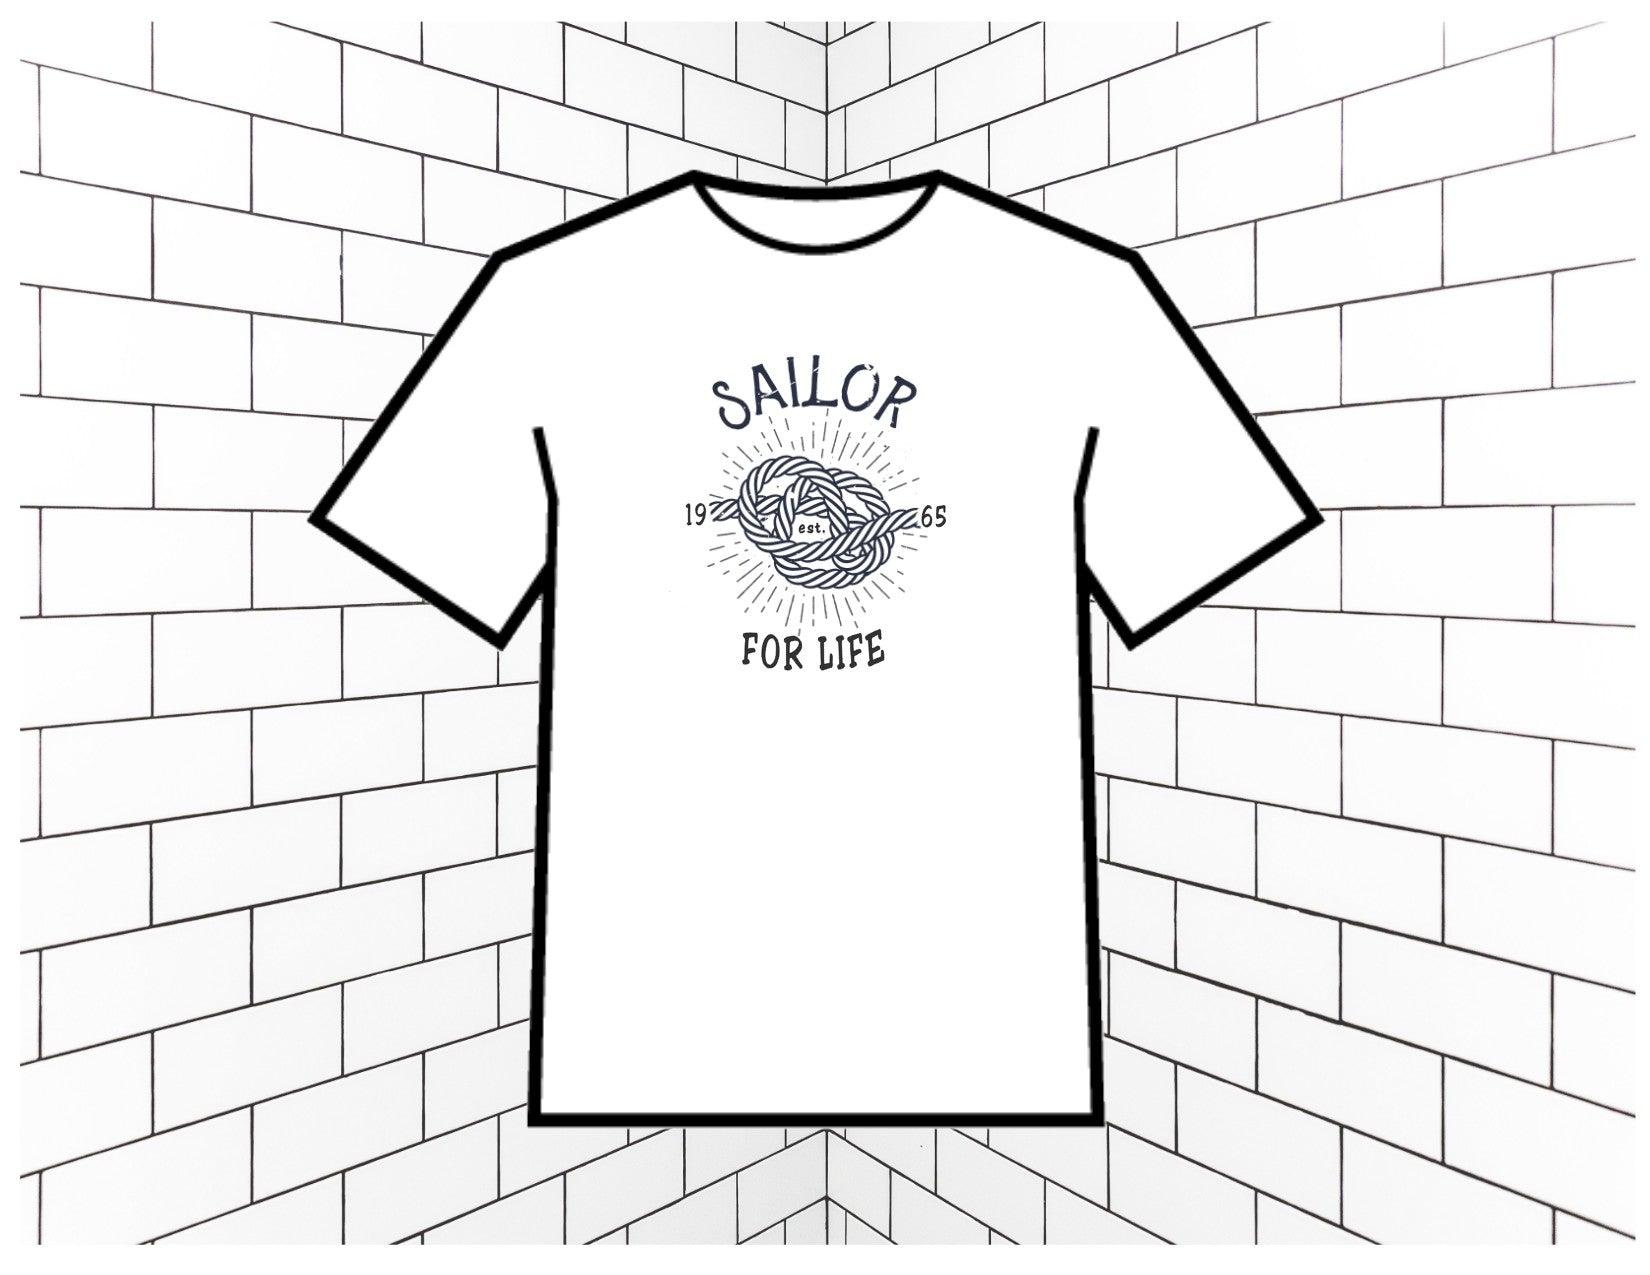 A Sailor for Life T-Shirt